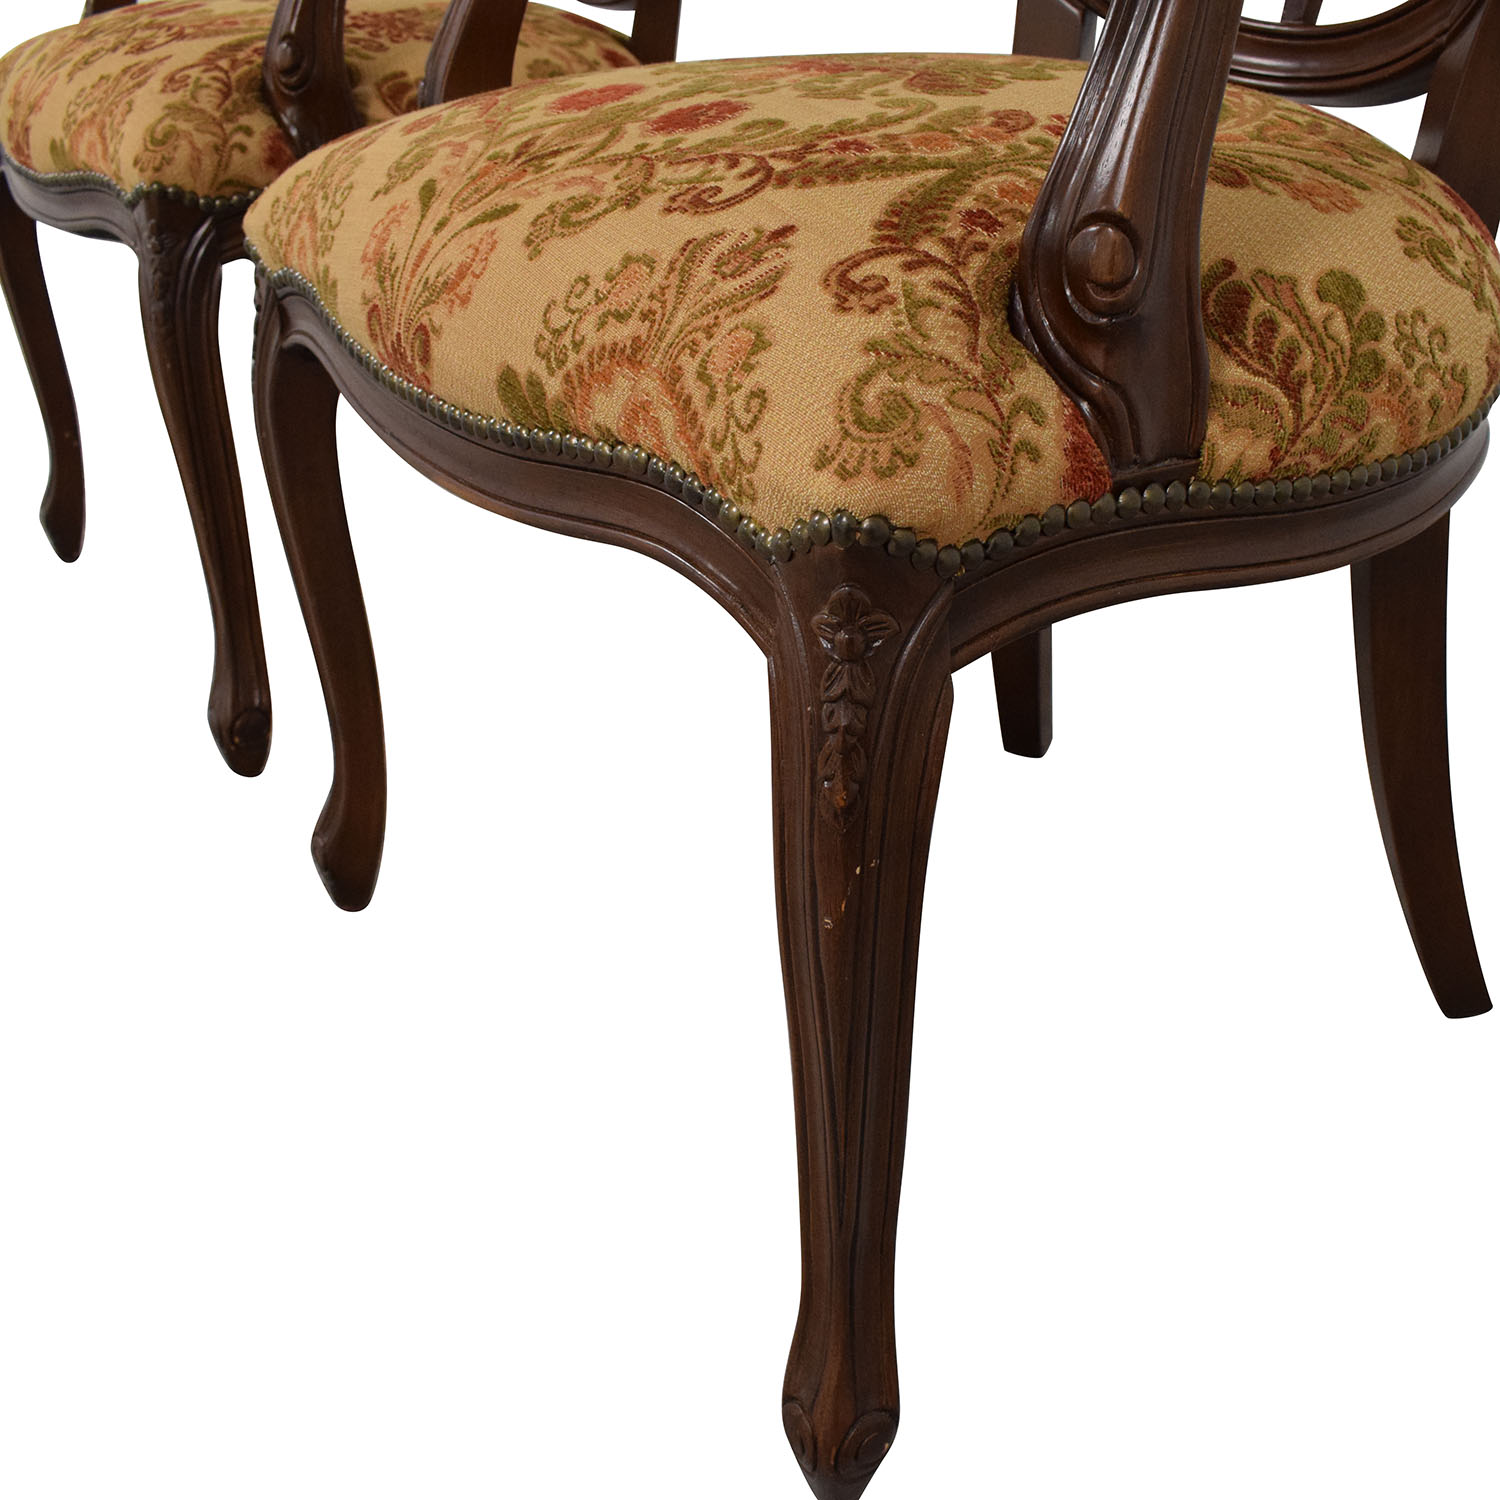 Floral Upholstered Armchairs with Antique Finish Dining Chairs